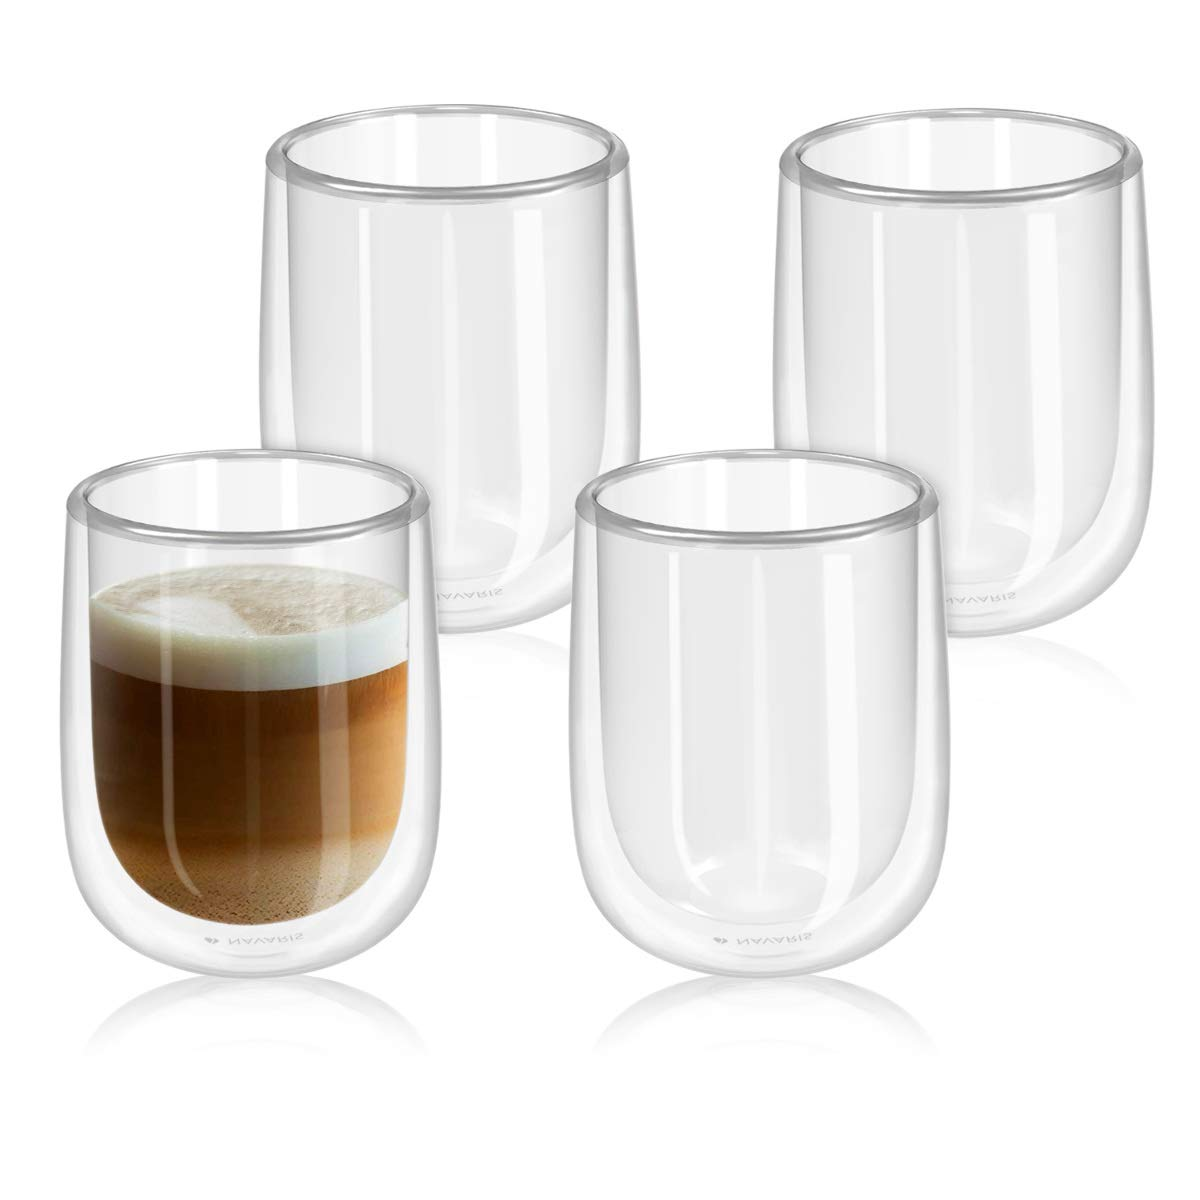 Creano 1x Double-Walled Thermo Glass XXL 400ml Heat-Resistant Drinking Glass bulbous